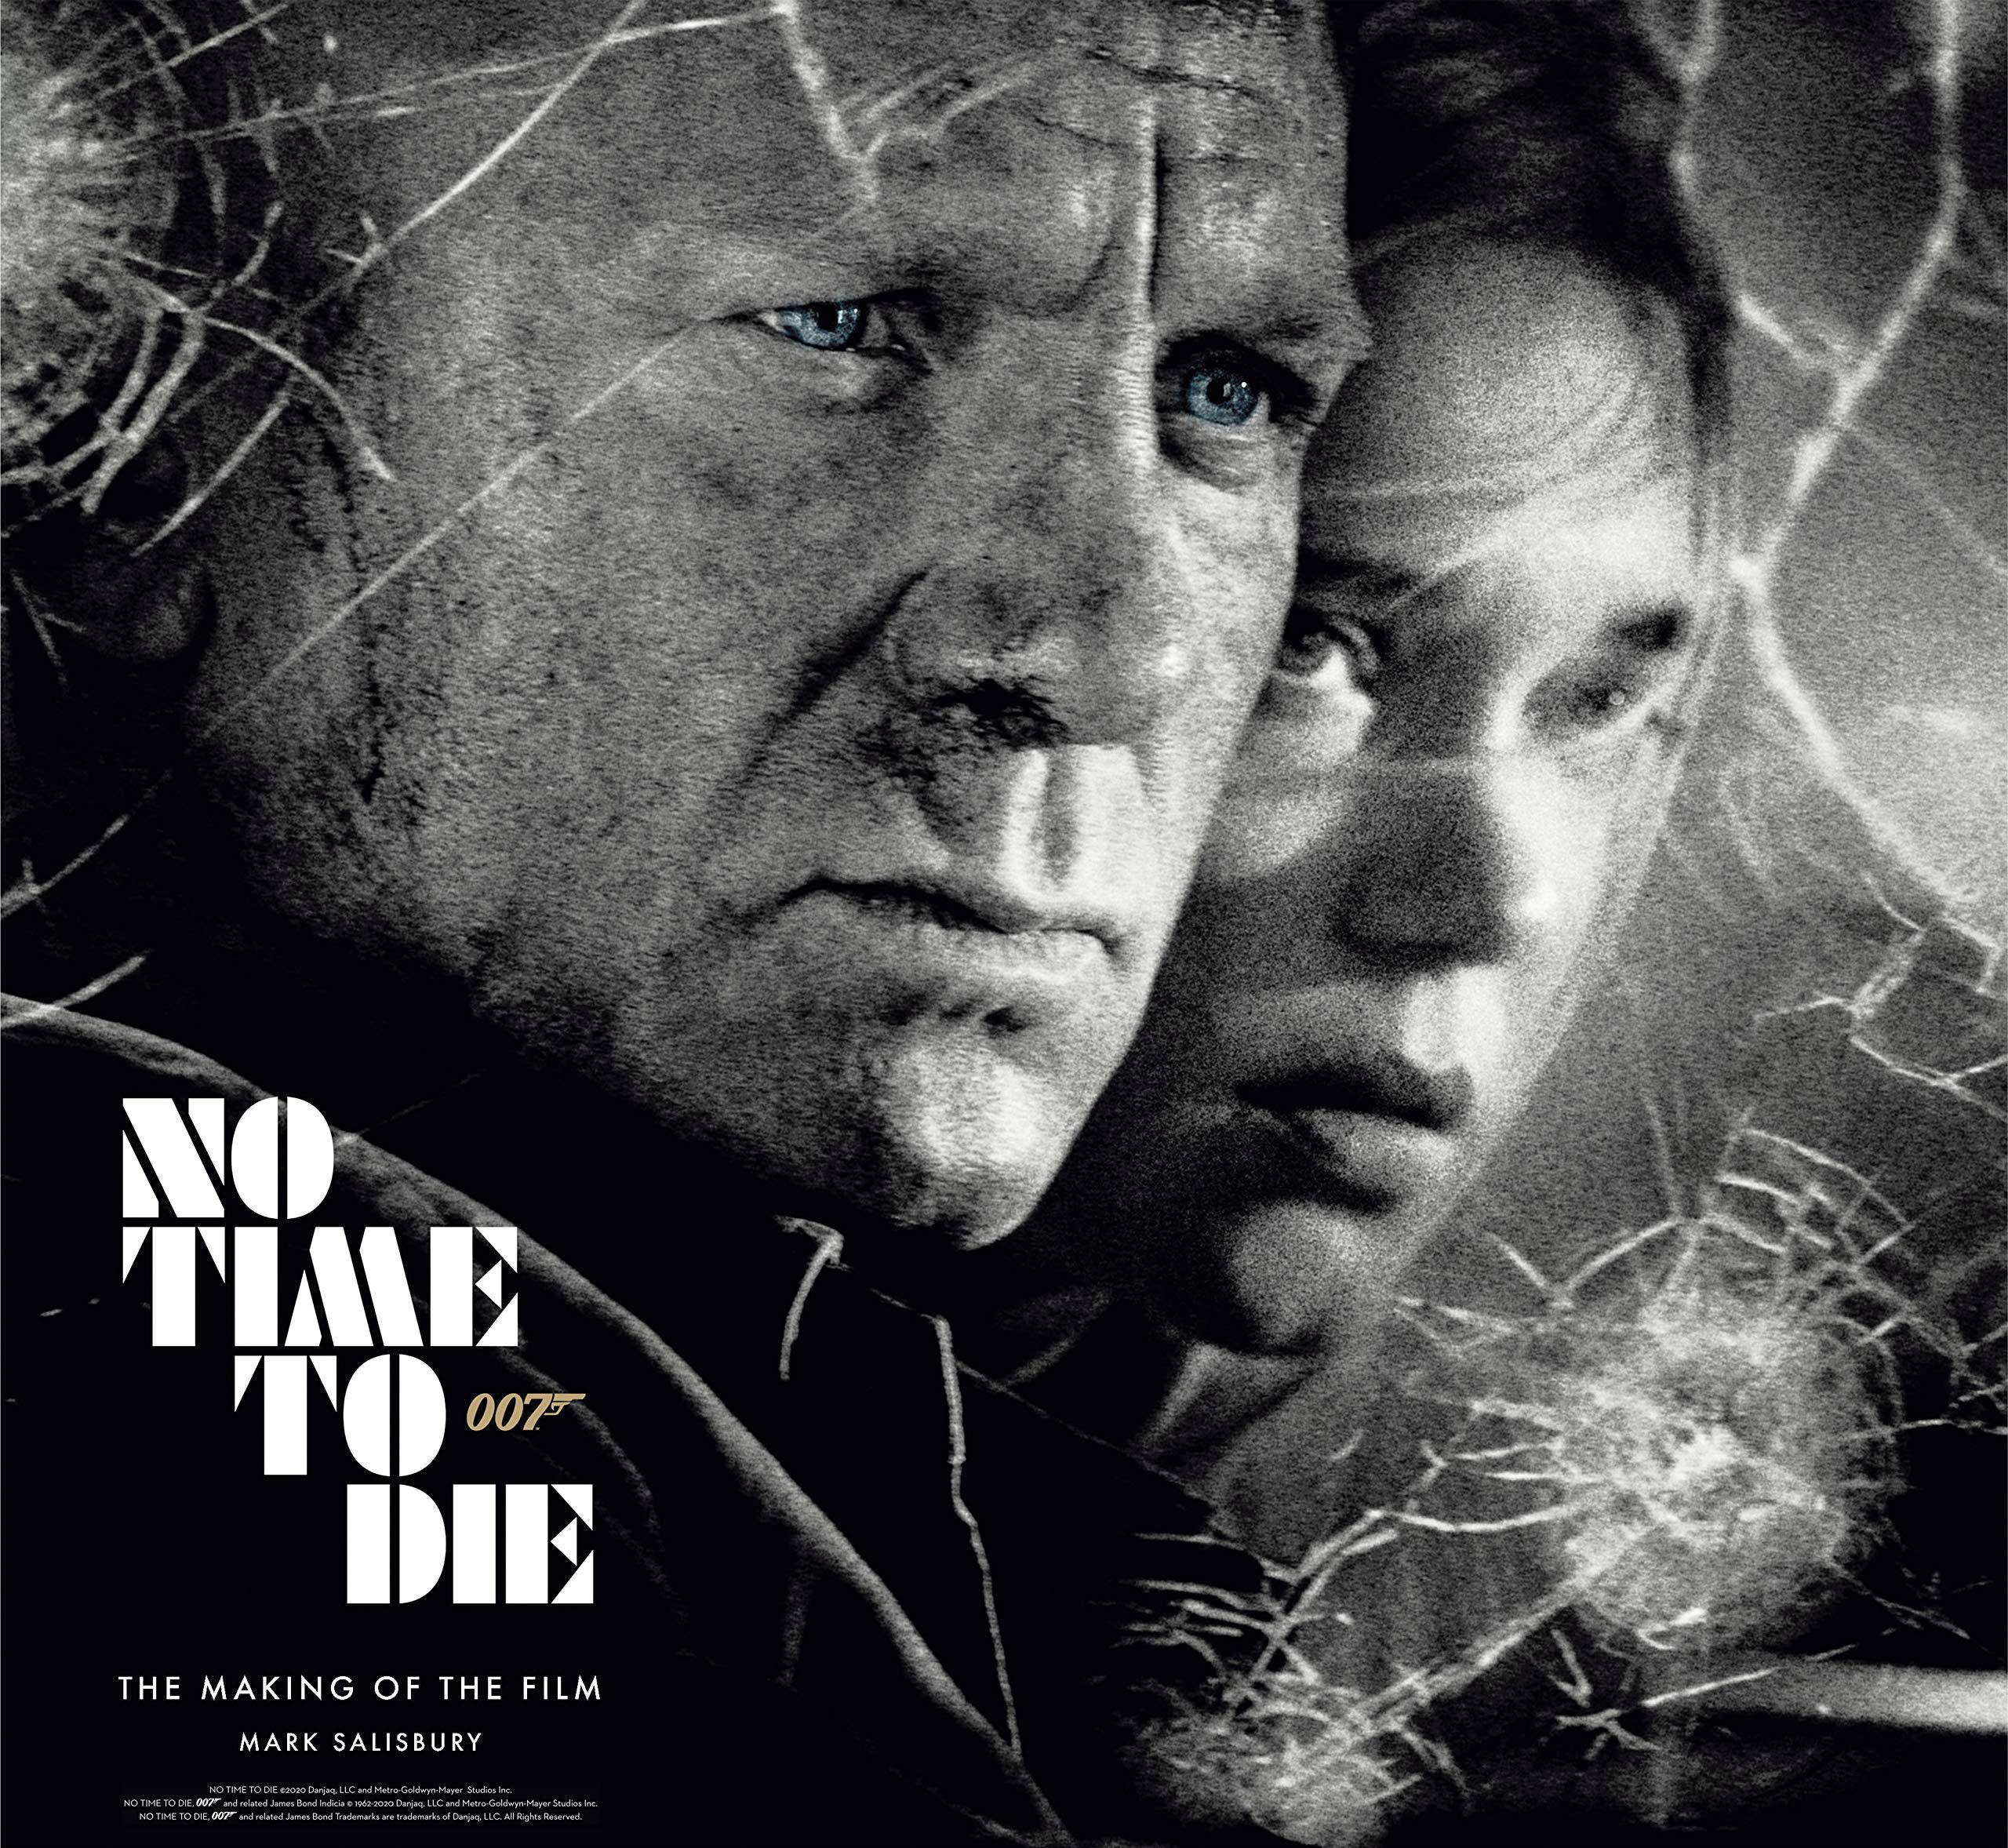 JAMES BOND NO TIME TO DIE MAKING OF THE FILM HC (RES)